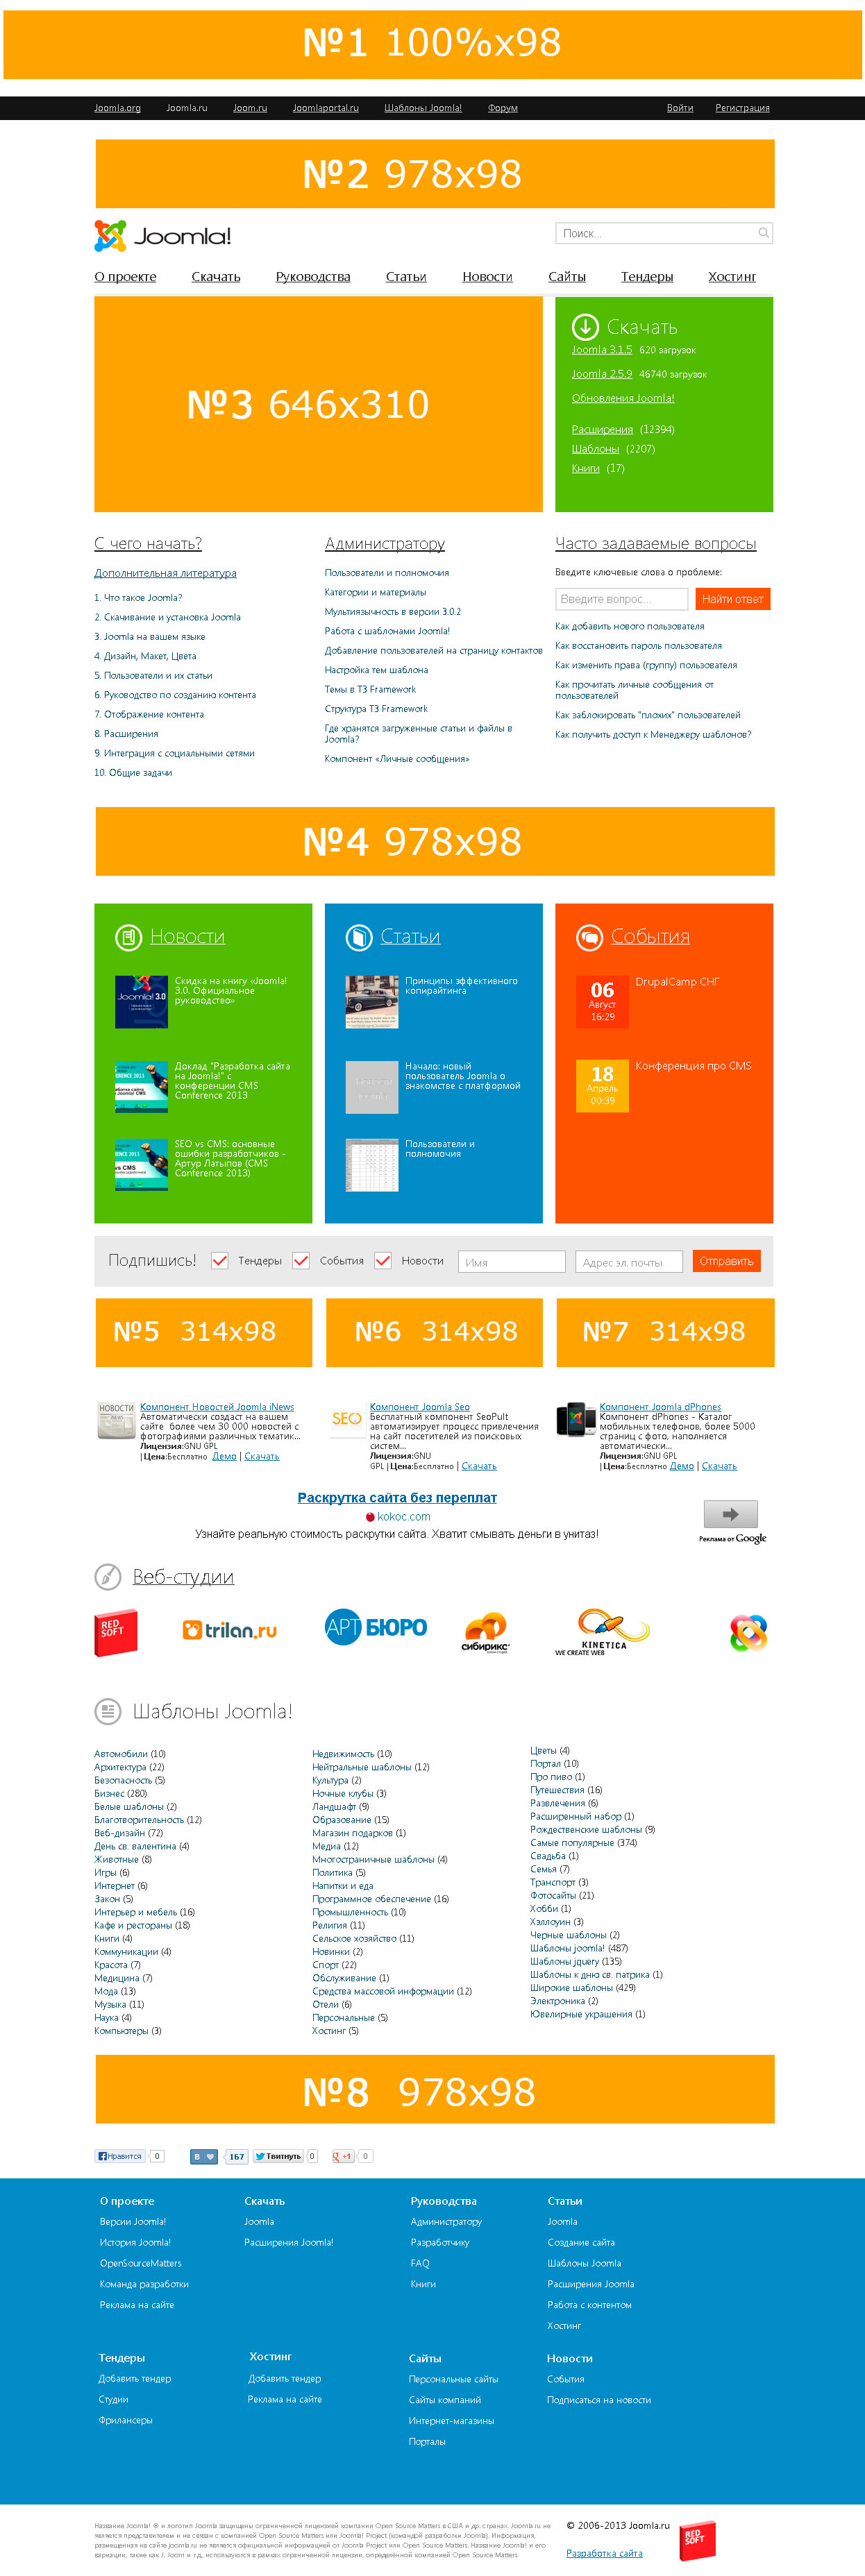 ads joomla index